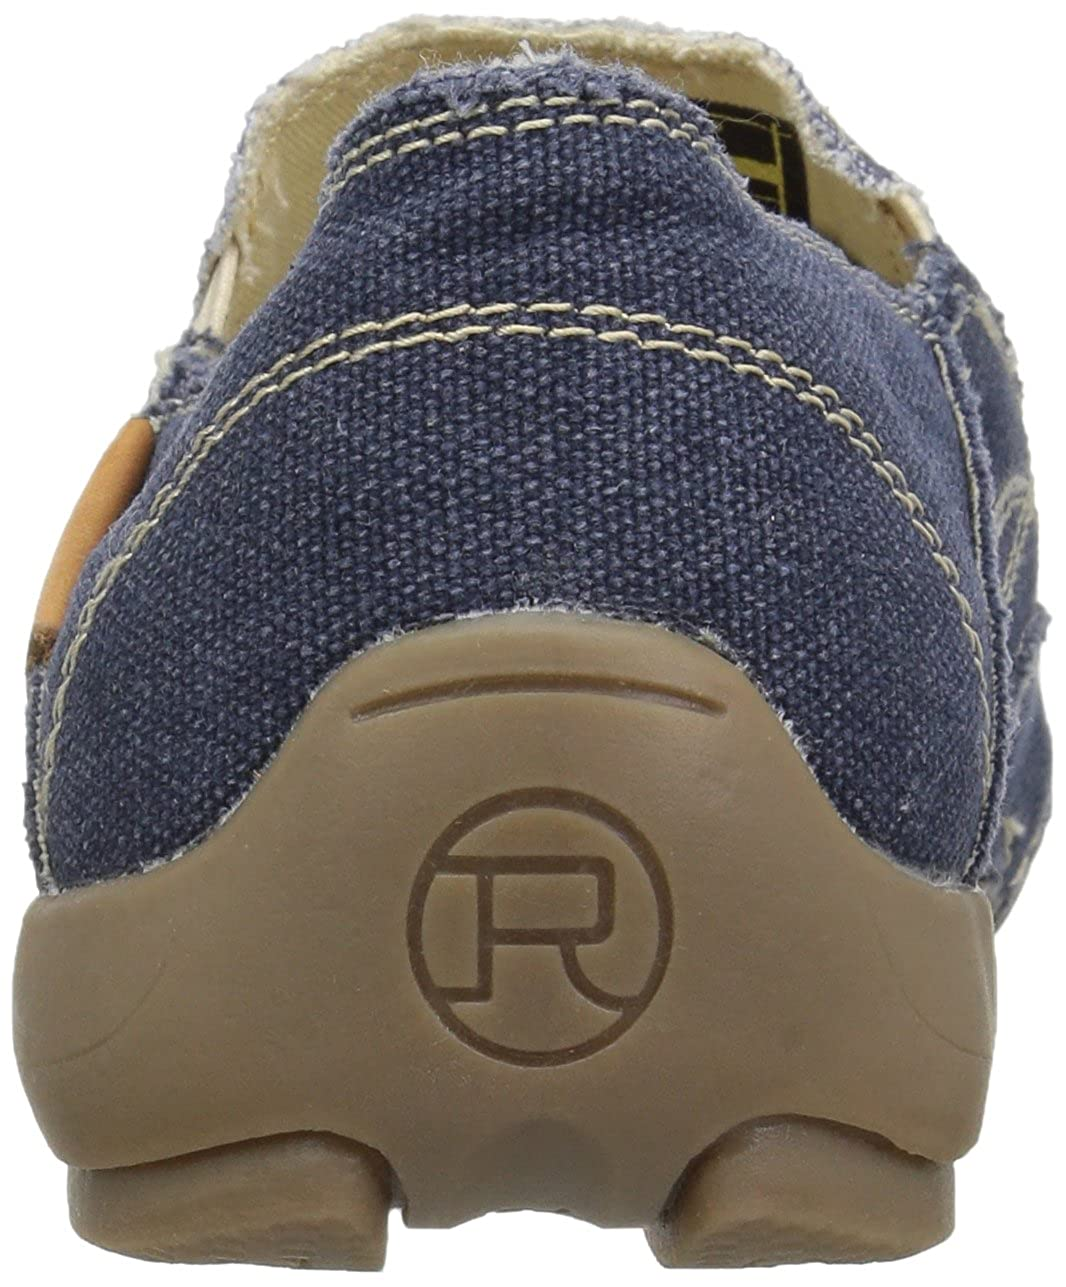 ROPER Womens Daisy Driving Style Loafer